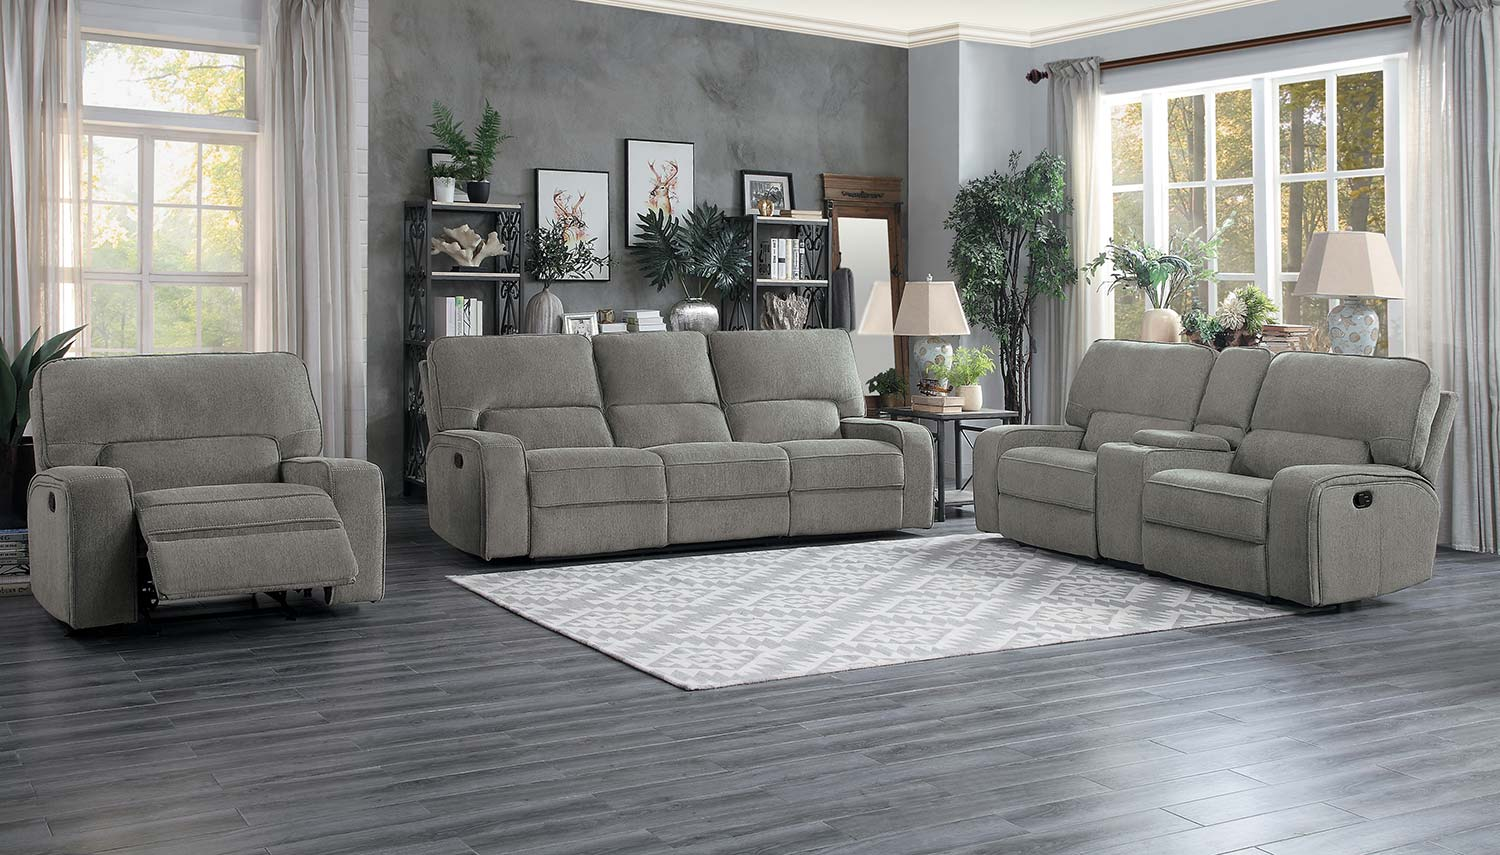 Homelegance Borneo Reclining Sofa Set - Mocha